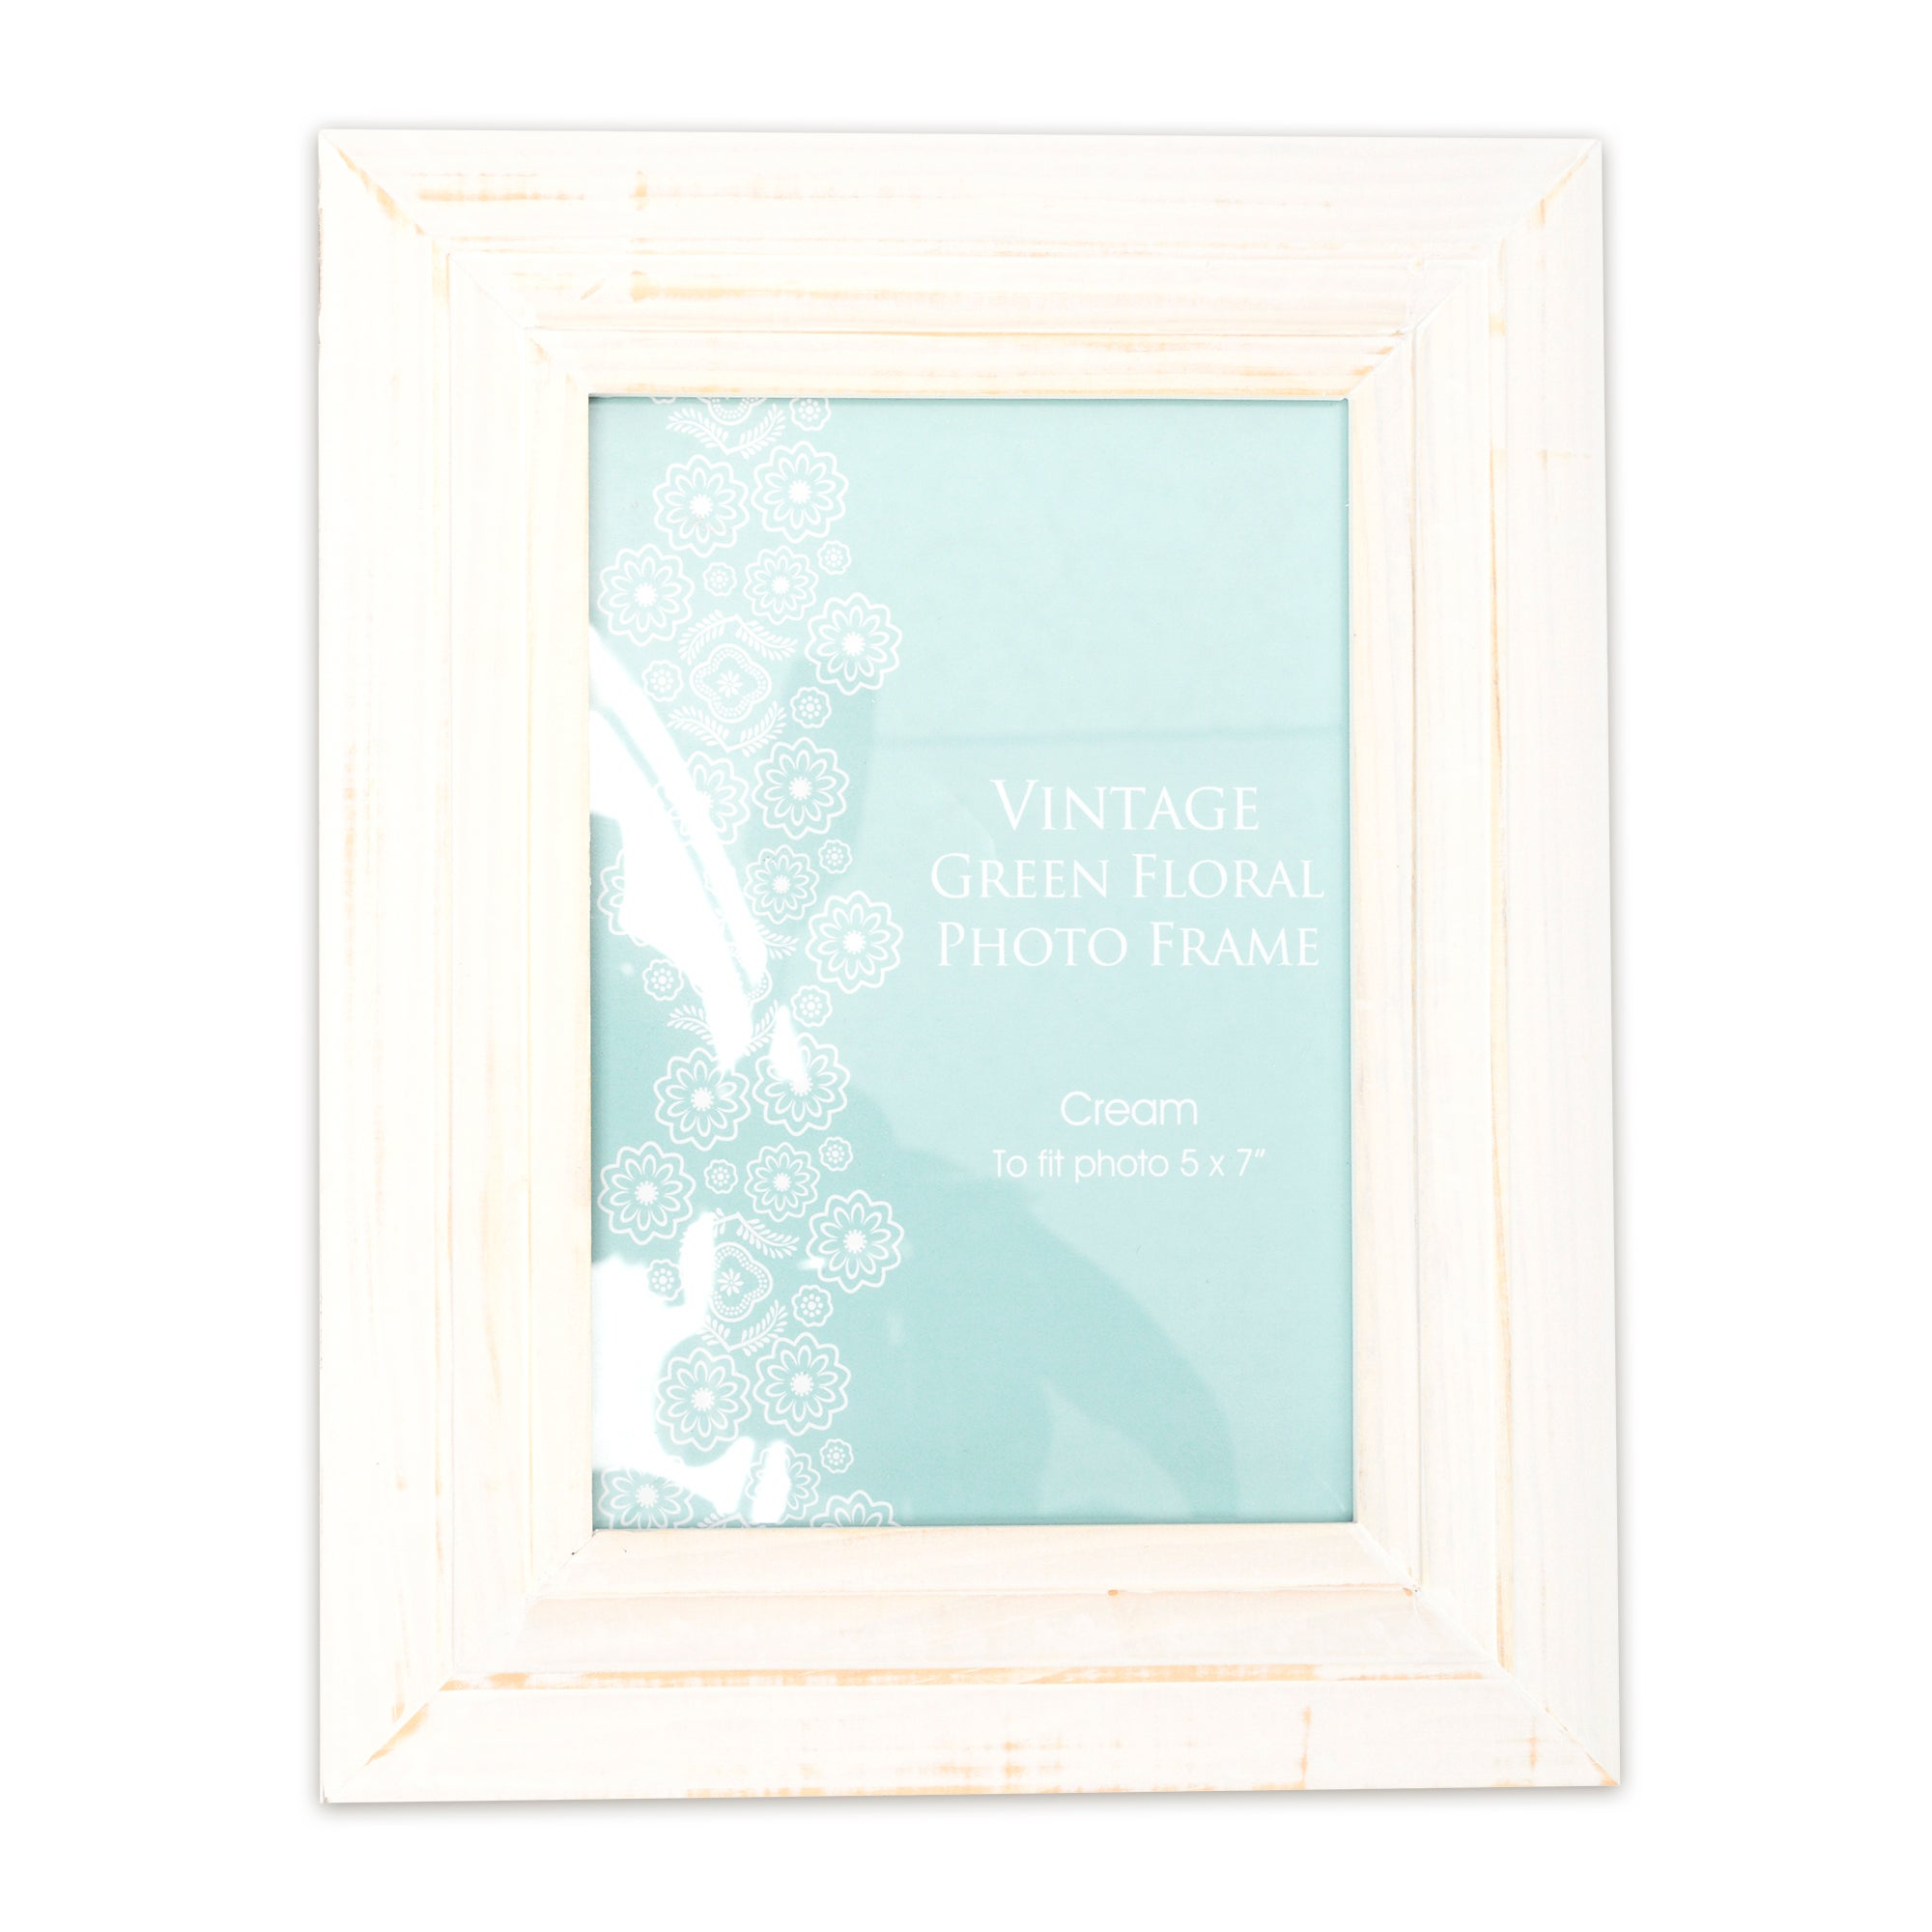 Vintage Green Floral Collection Distressed Cream Photo Frame